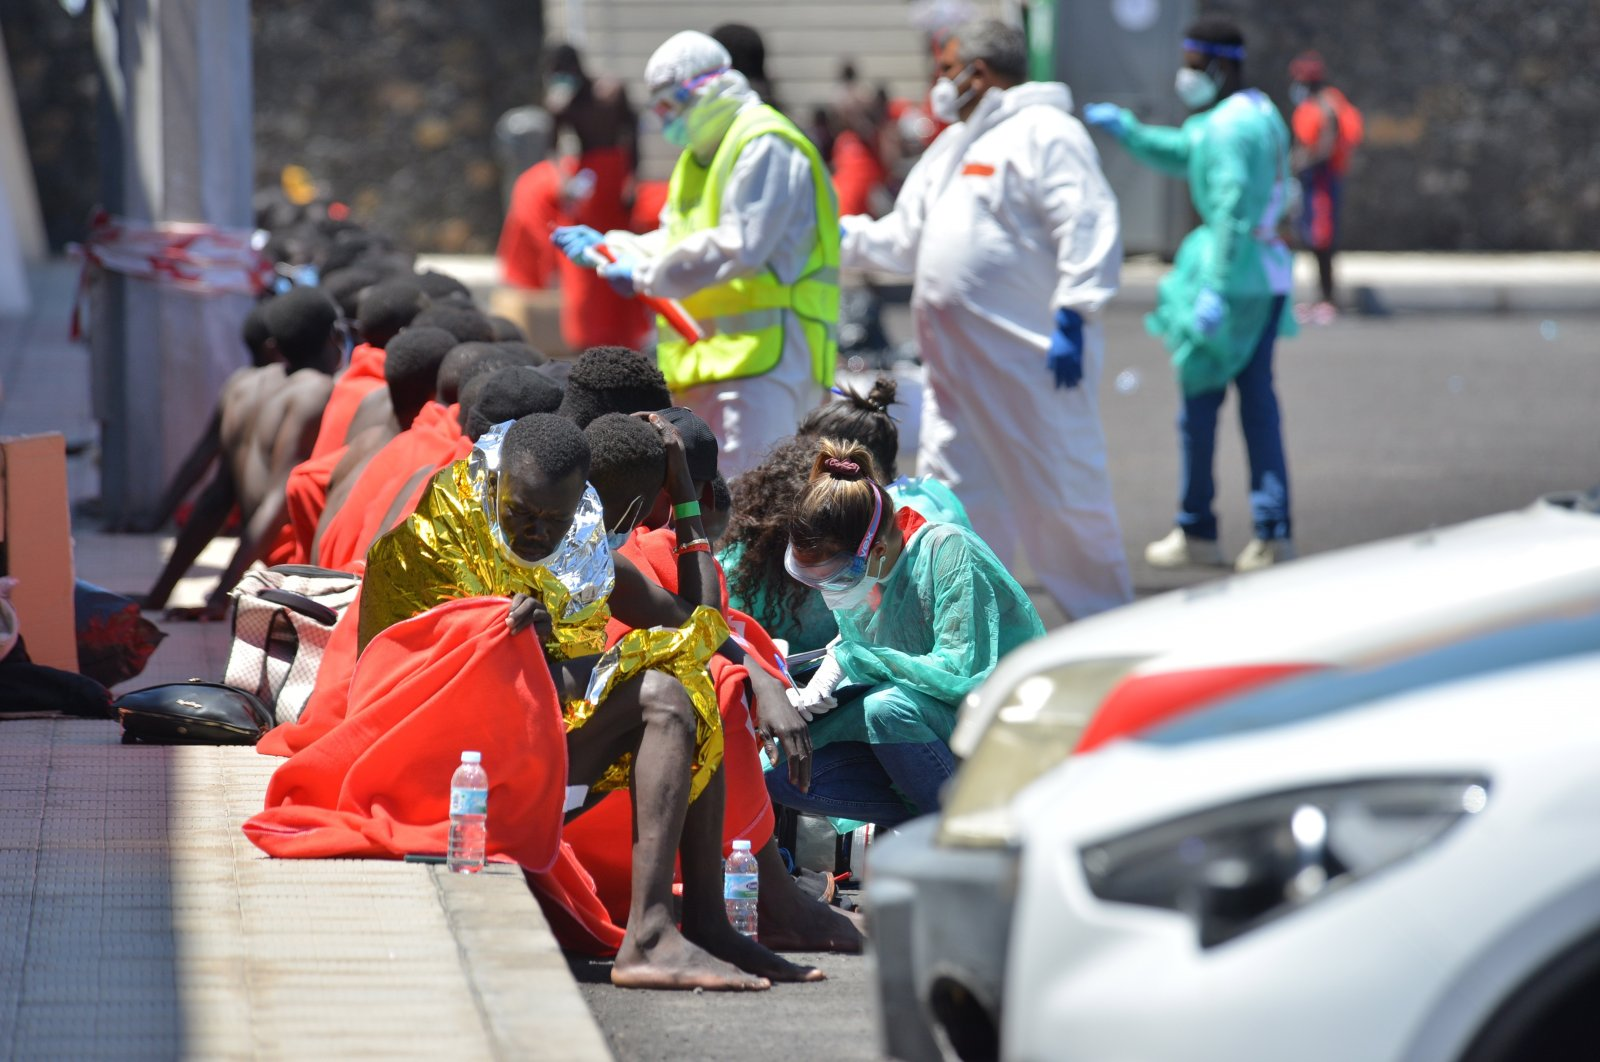 Red Cross members take care of migrants rescued at the La Restringa port in El Hierro, Canary Islands, Spain, Aug. 23, 2021. (EPA Photo)